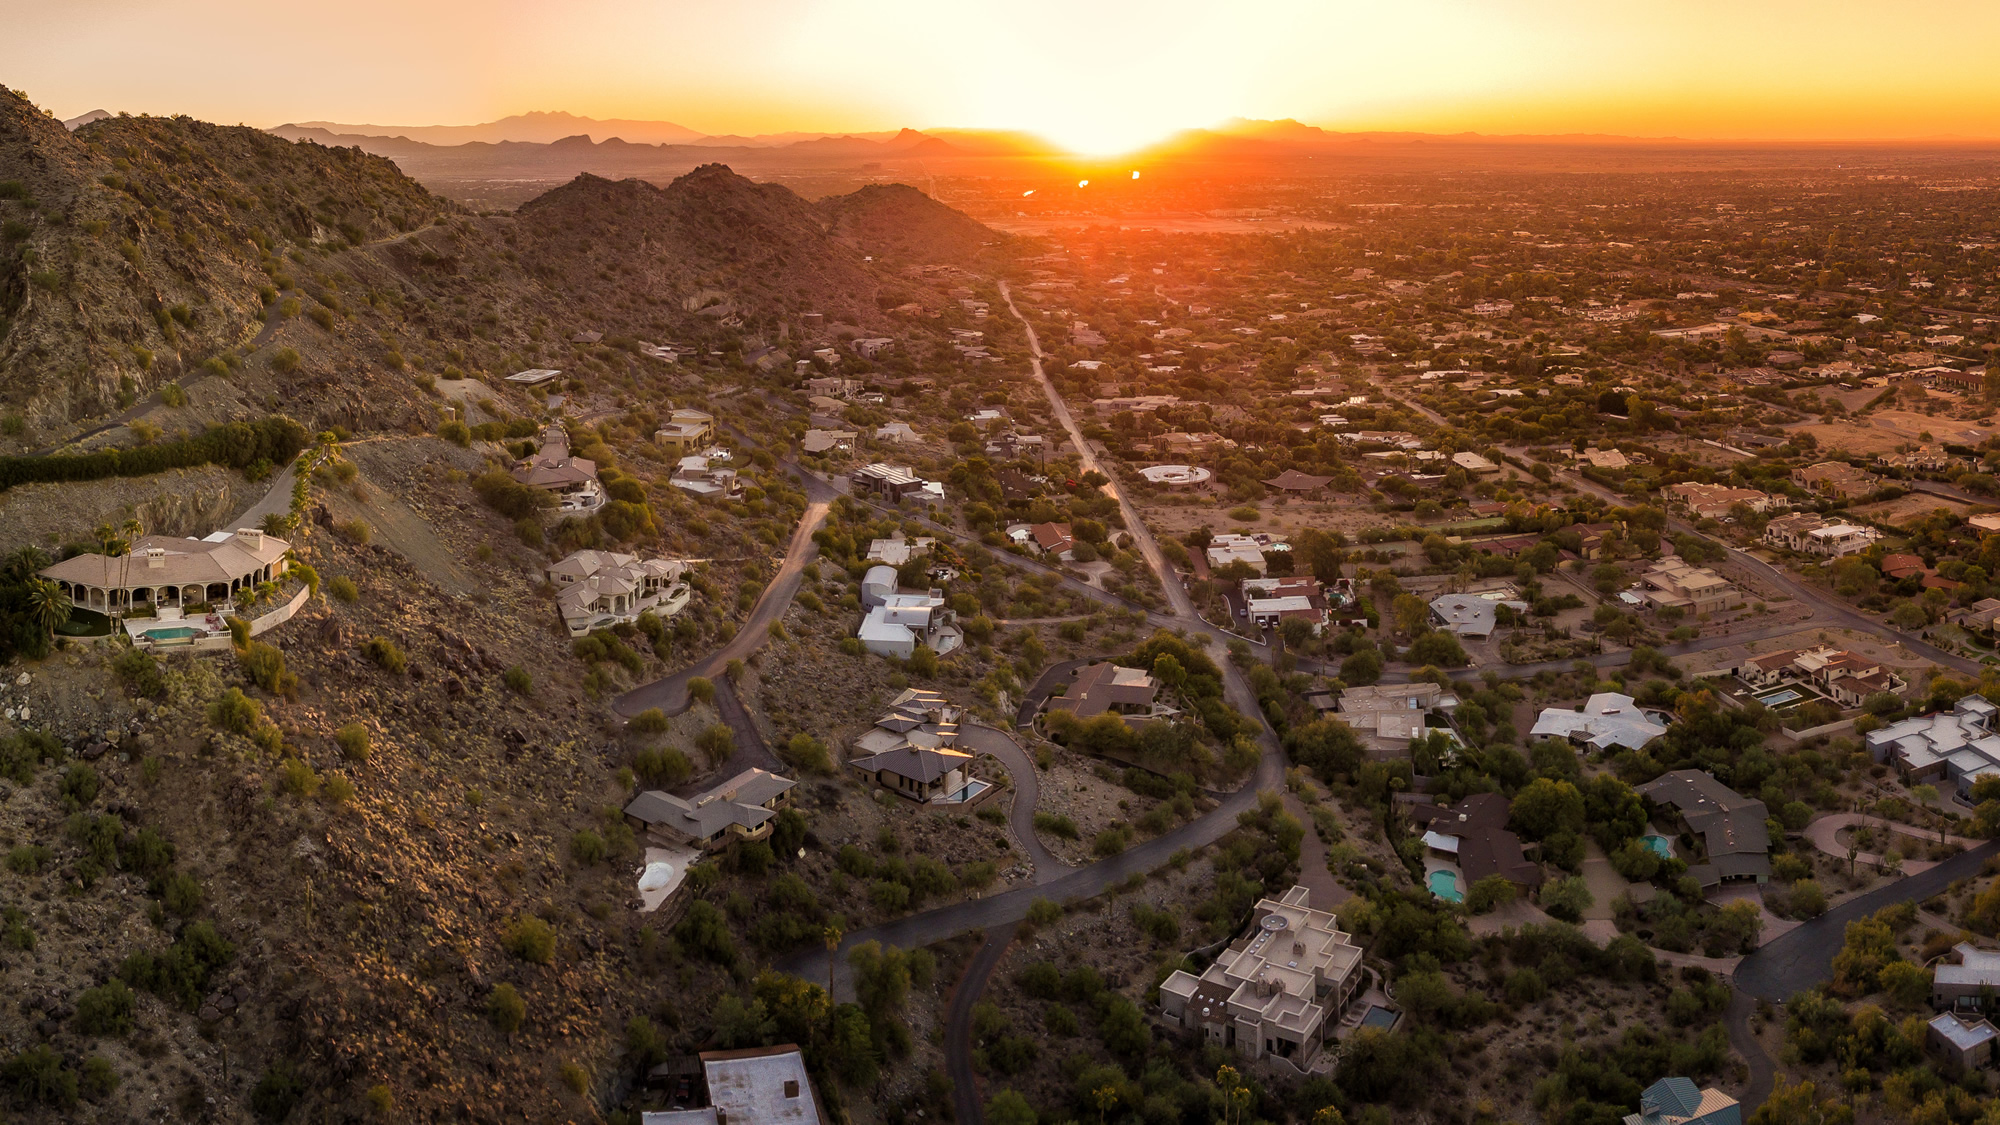 drone view of Scottsdale neighborhood home roofs